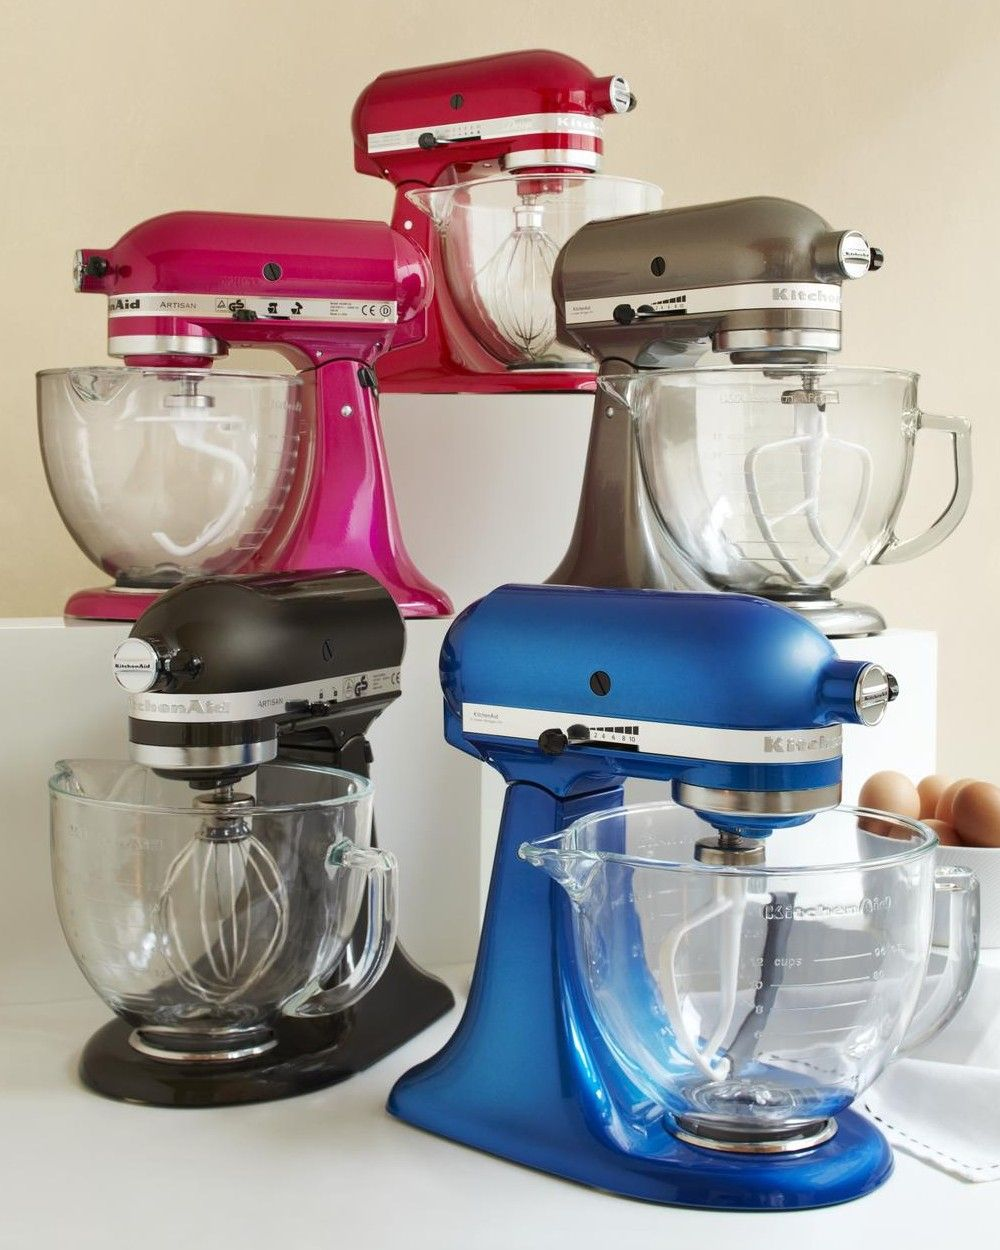 Kitchenaid platinum collection includes glass bowl and